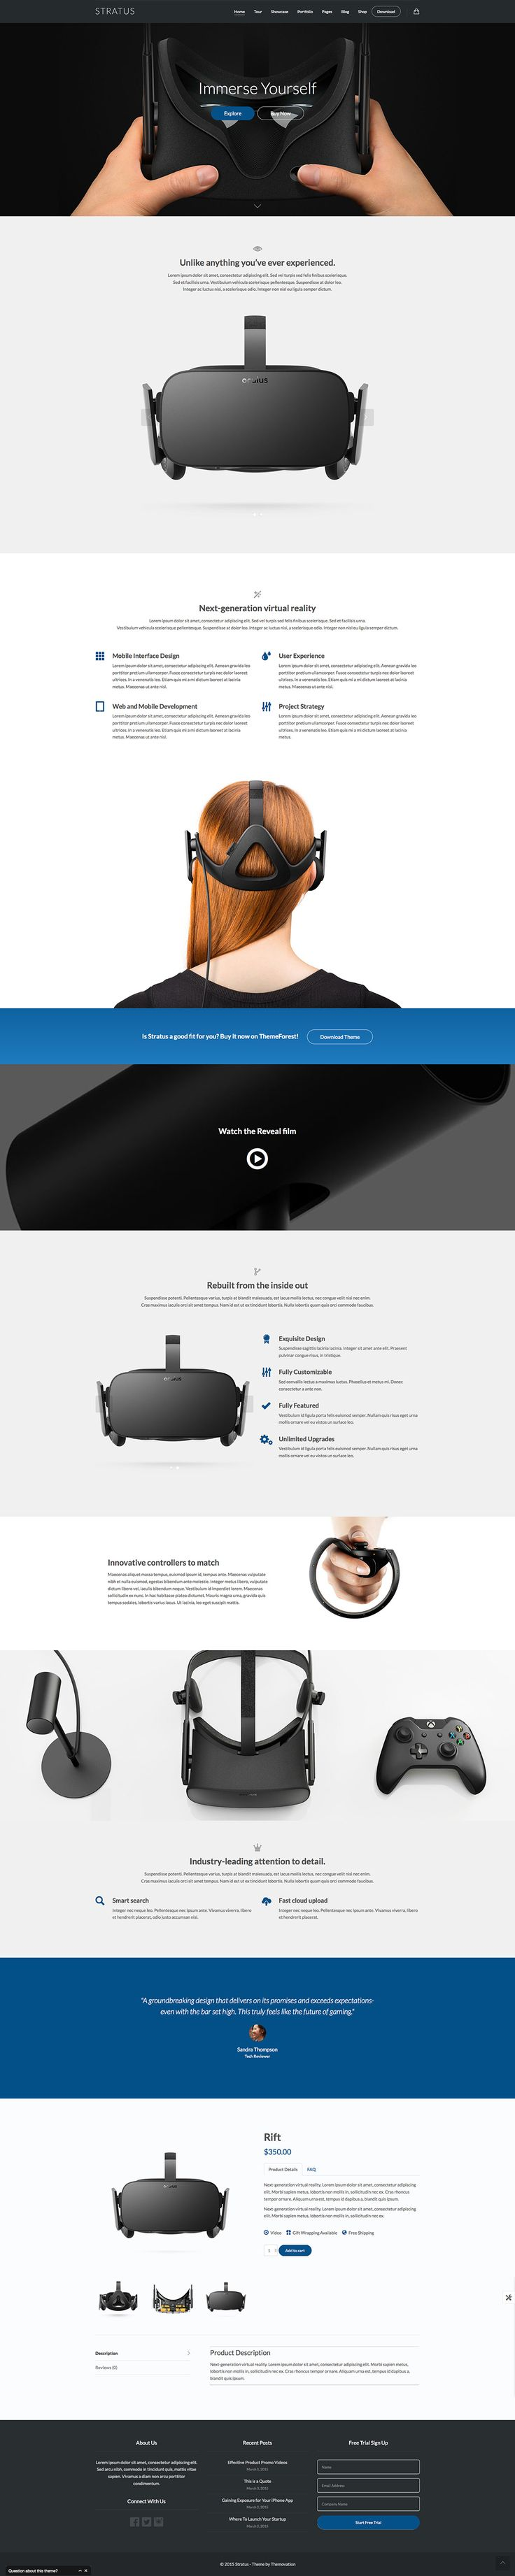 Modern and clean designed showcase theme for Apps, SaaS solutions or hardware. Based on Bootstrap and comes with EooCommerce support.